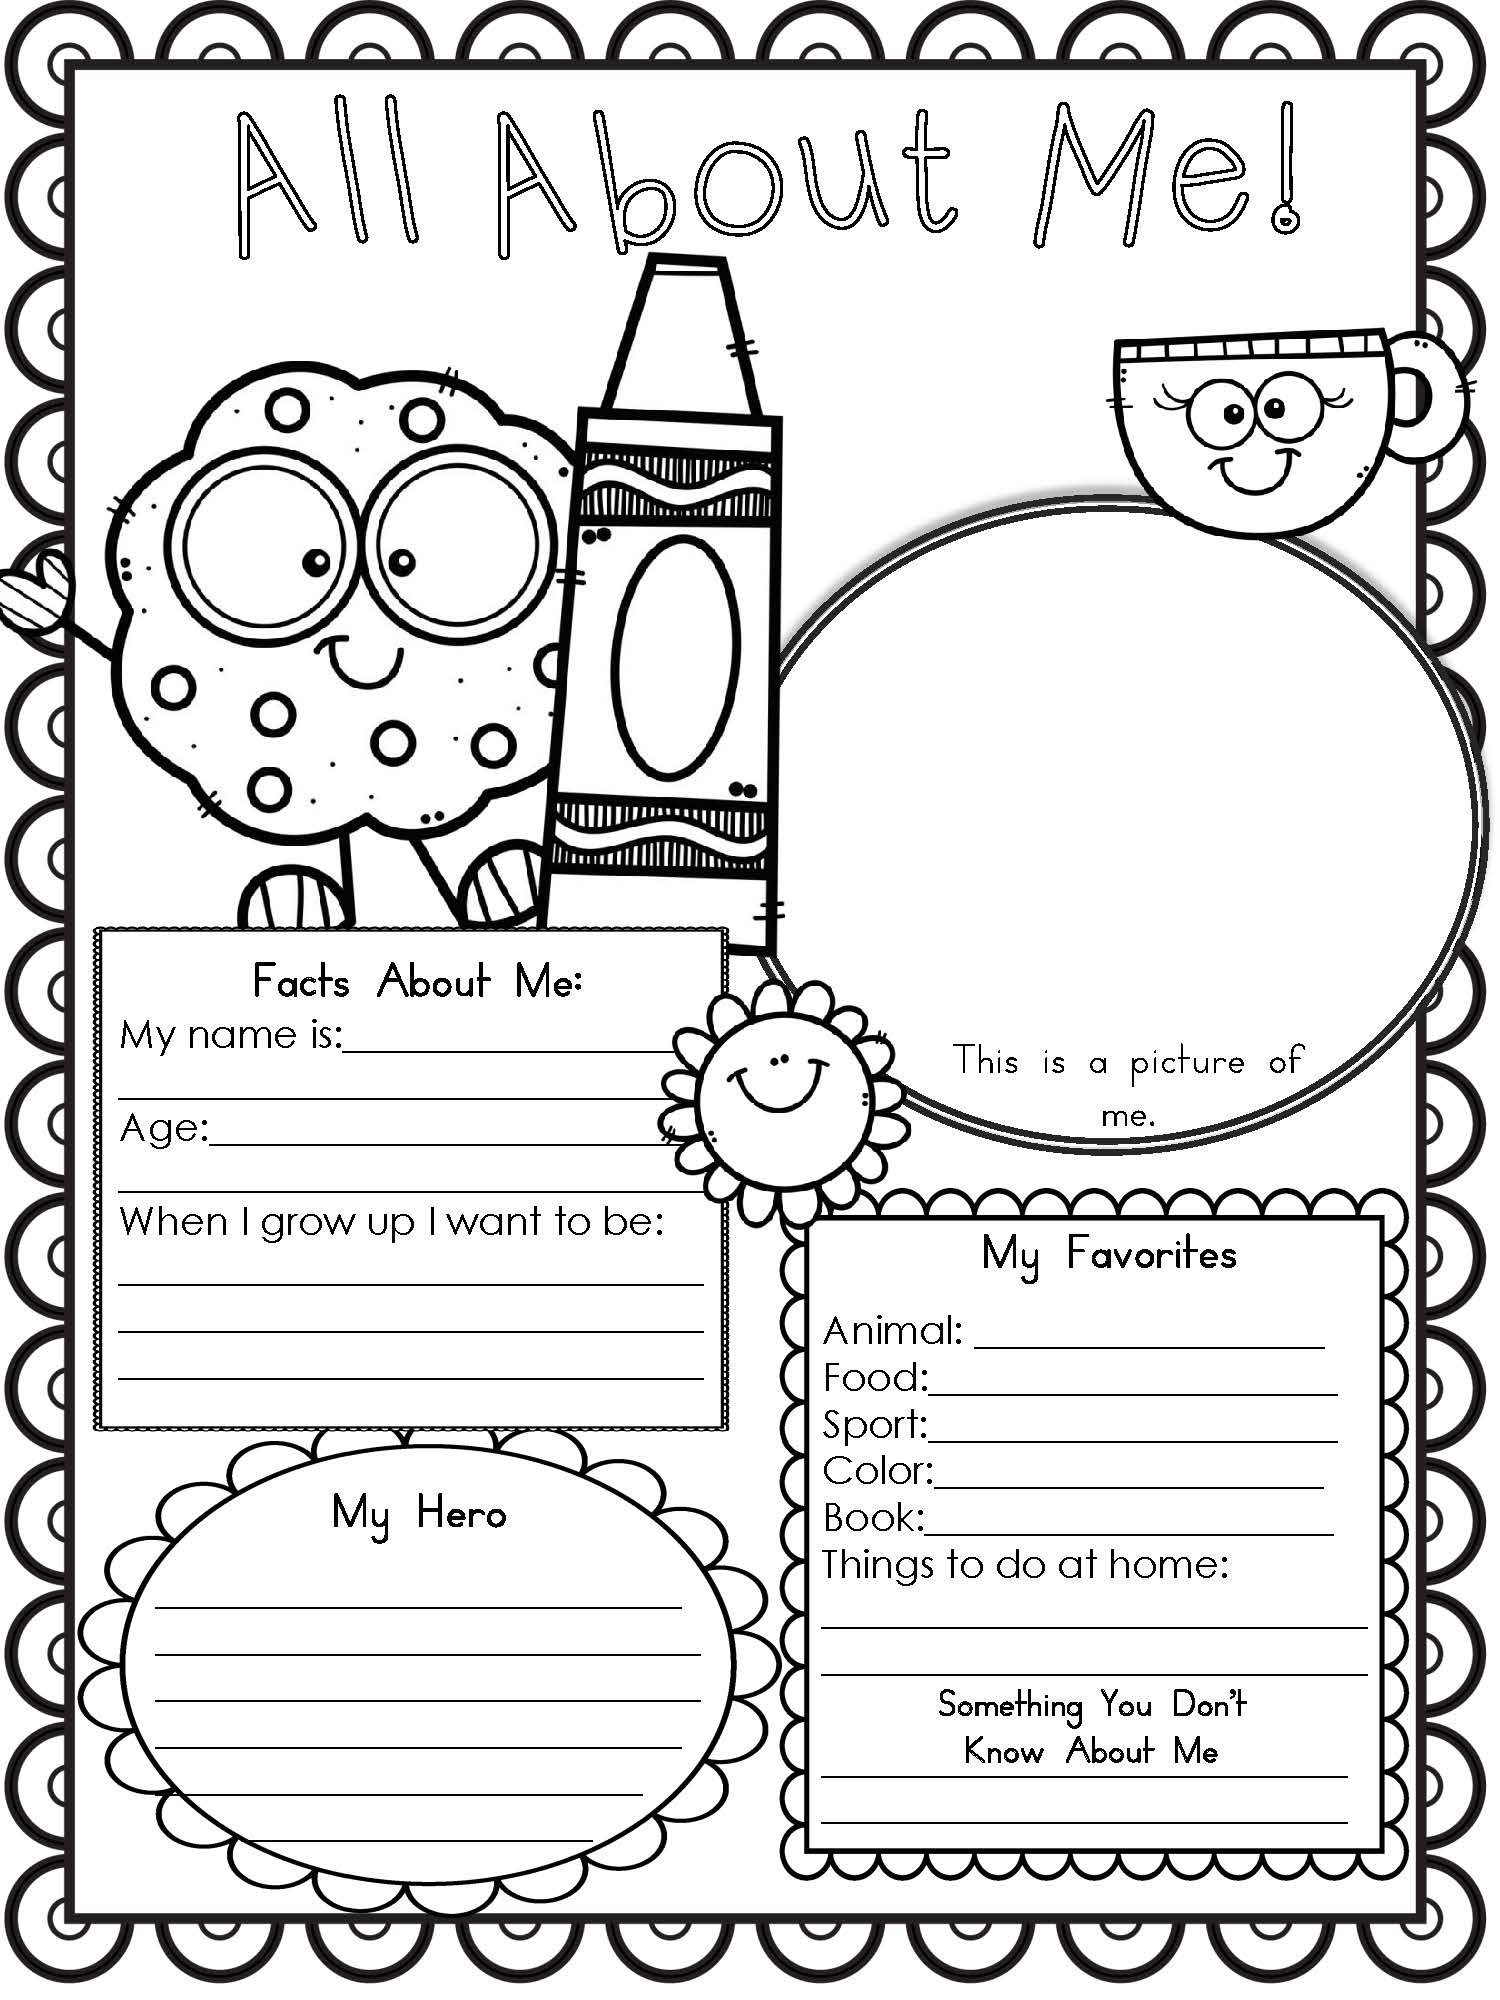 All About Me Kindergarten Worksheet Free Printable All About Me Worksheet Modern Homeschool Family